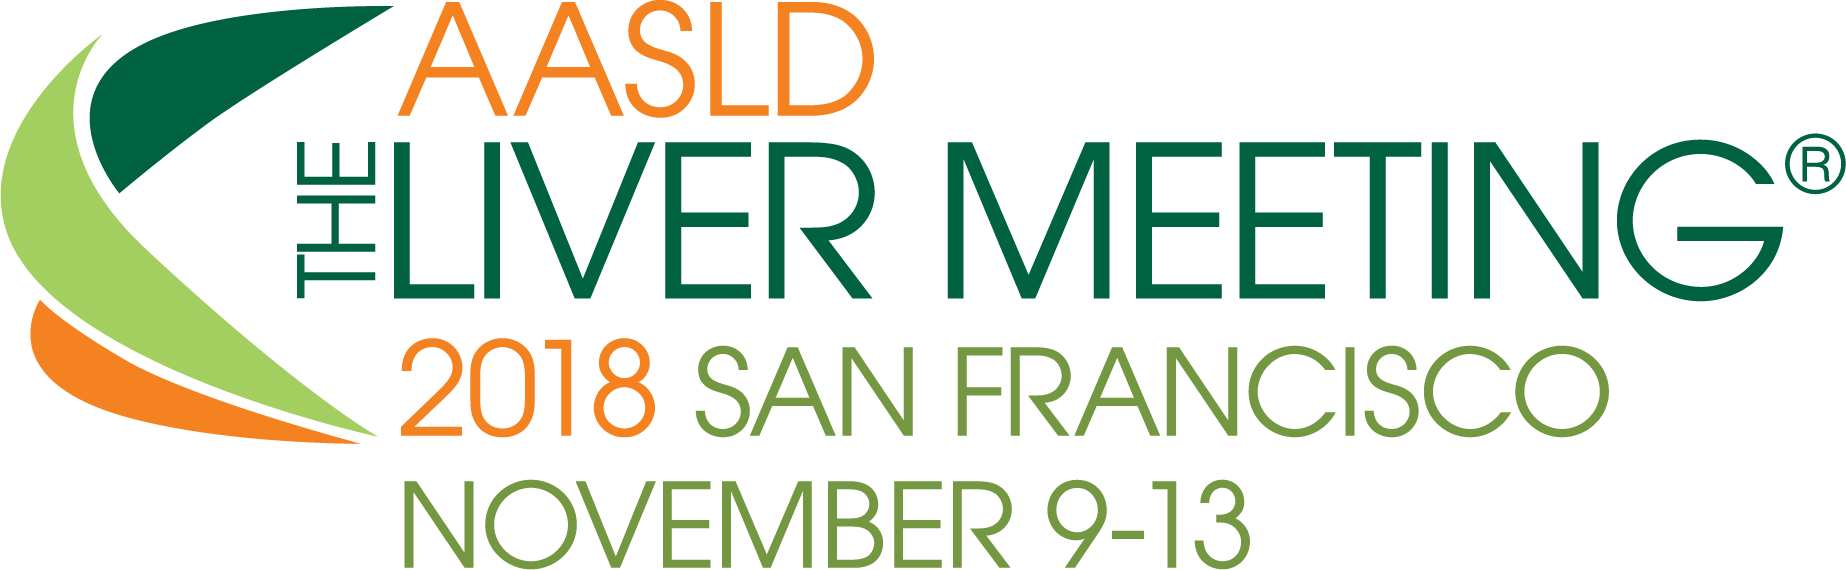 American Association for the Study of Liver Diseases 2018